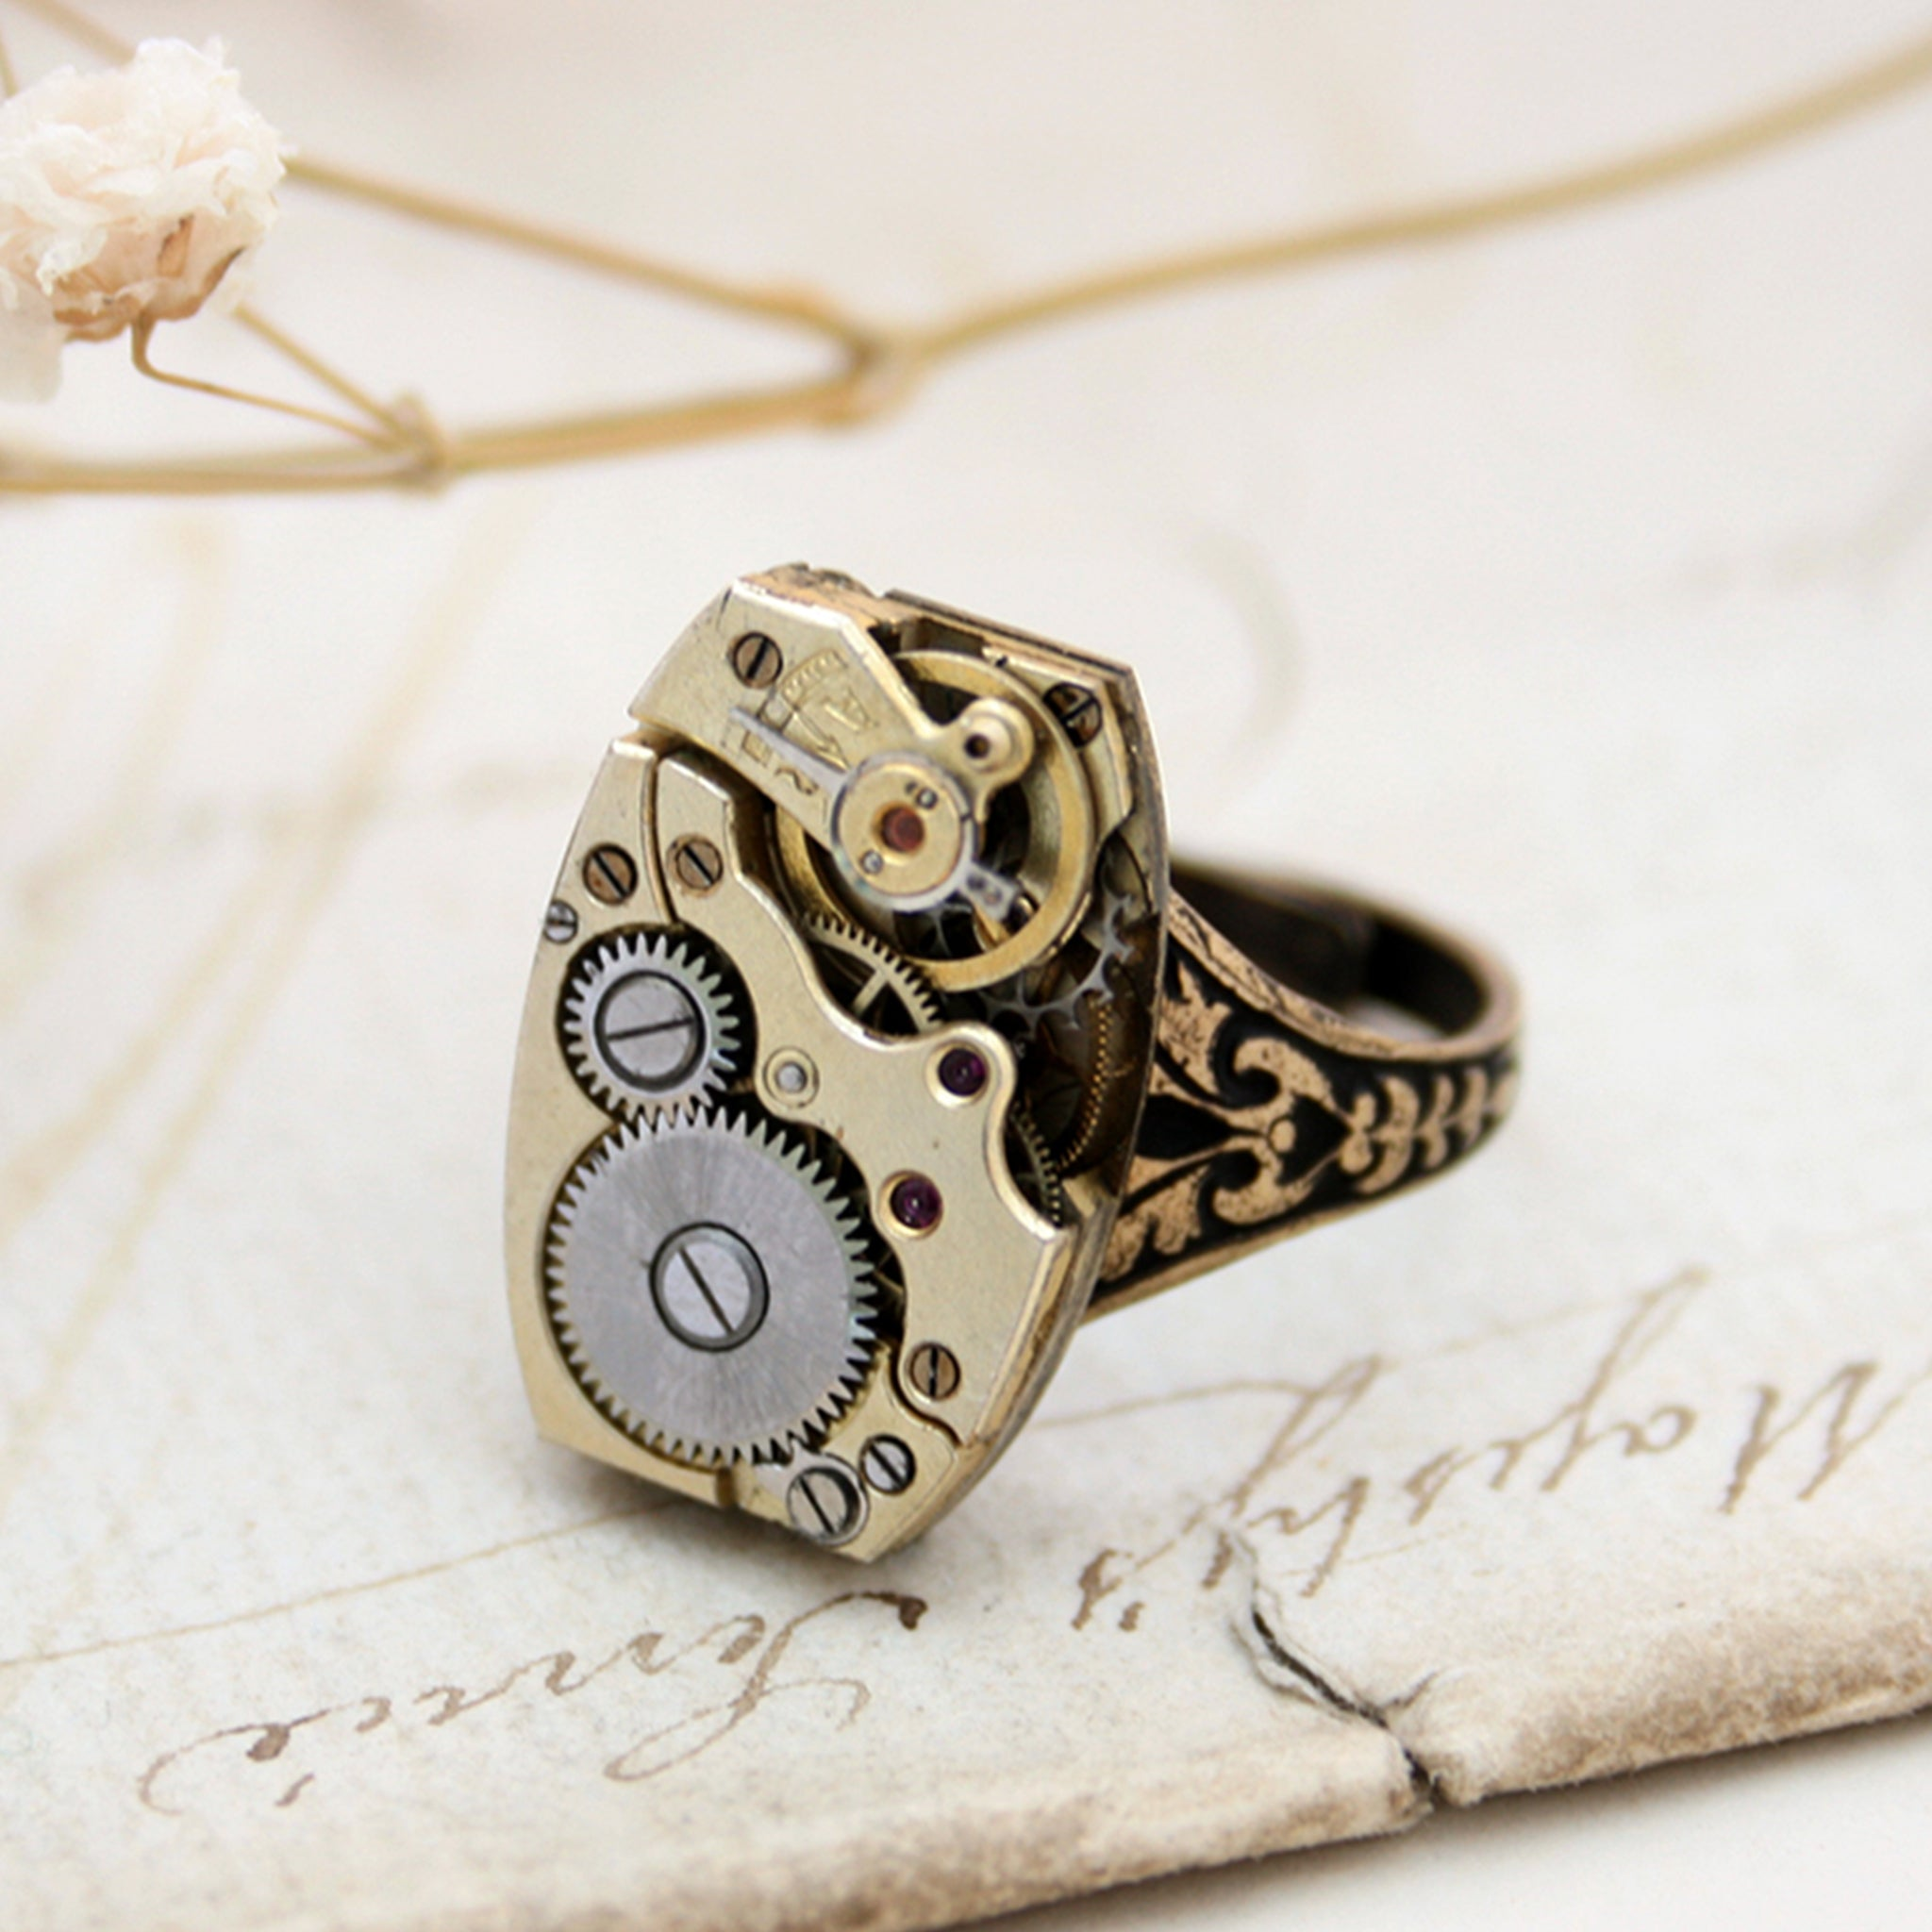 Golden Steampunk Signet Ring in Golden color